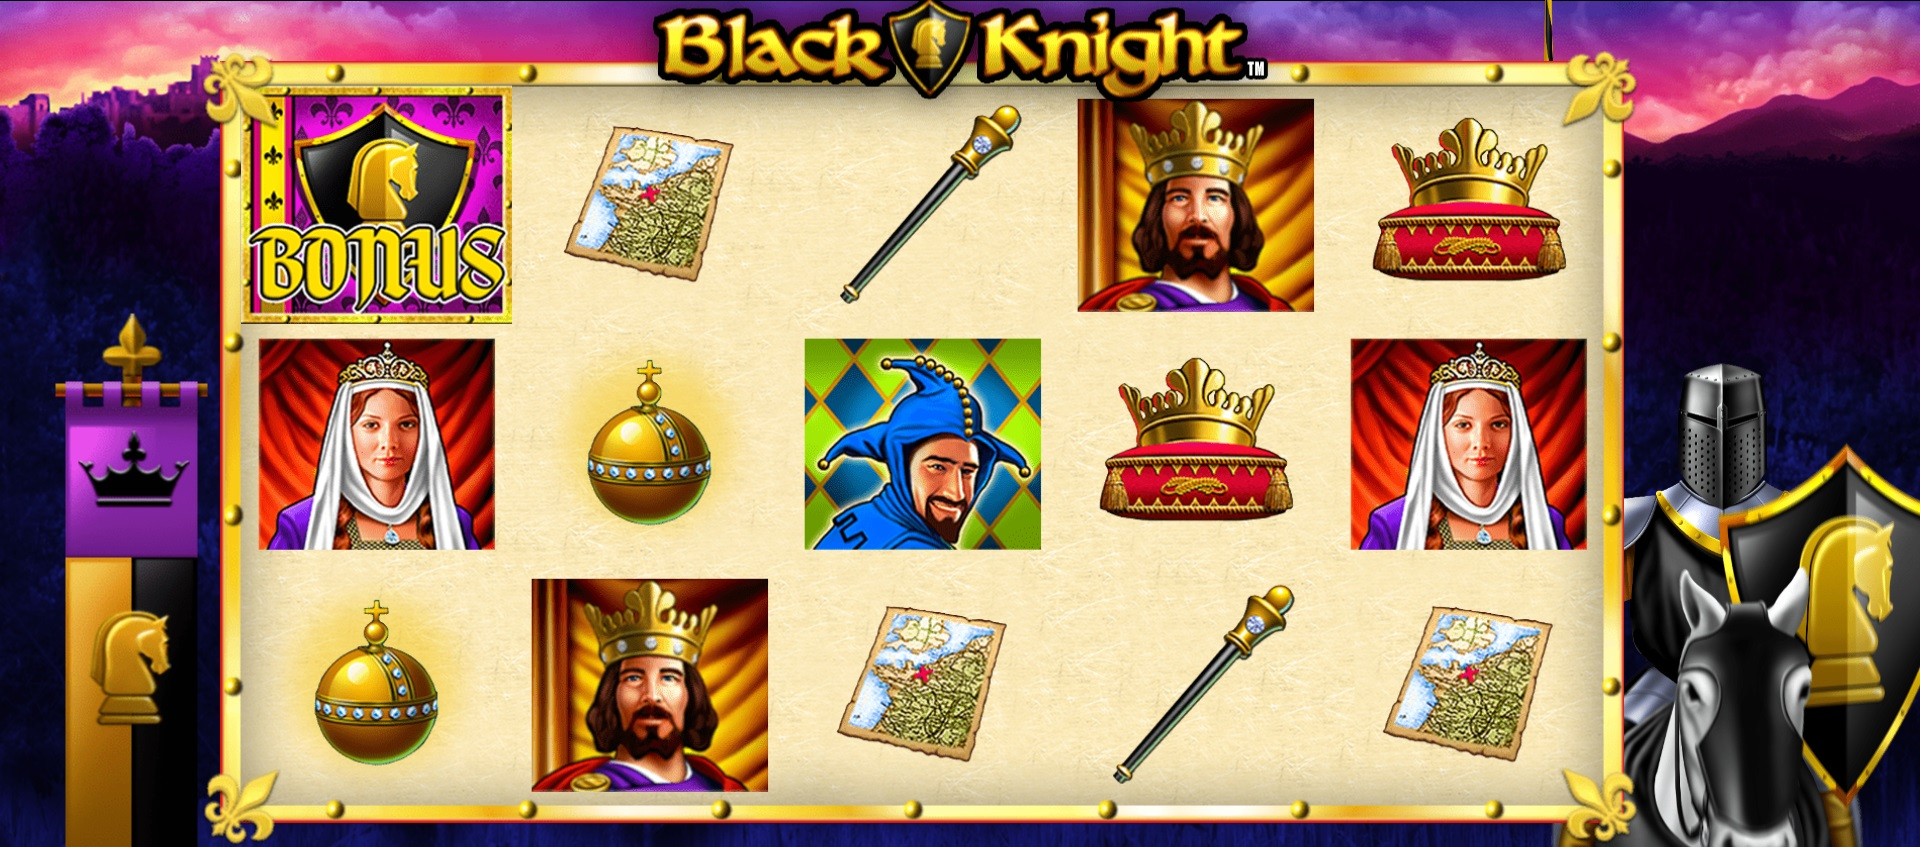 Experience a real step back in time with the free Black Knight slot